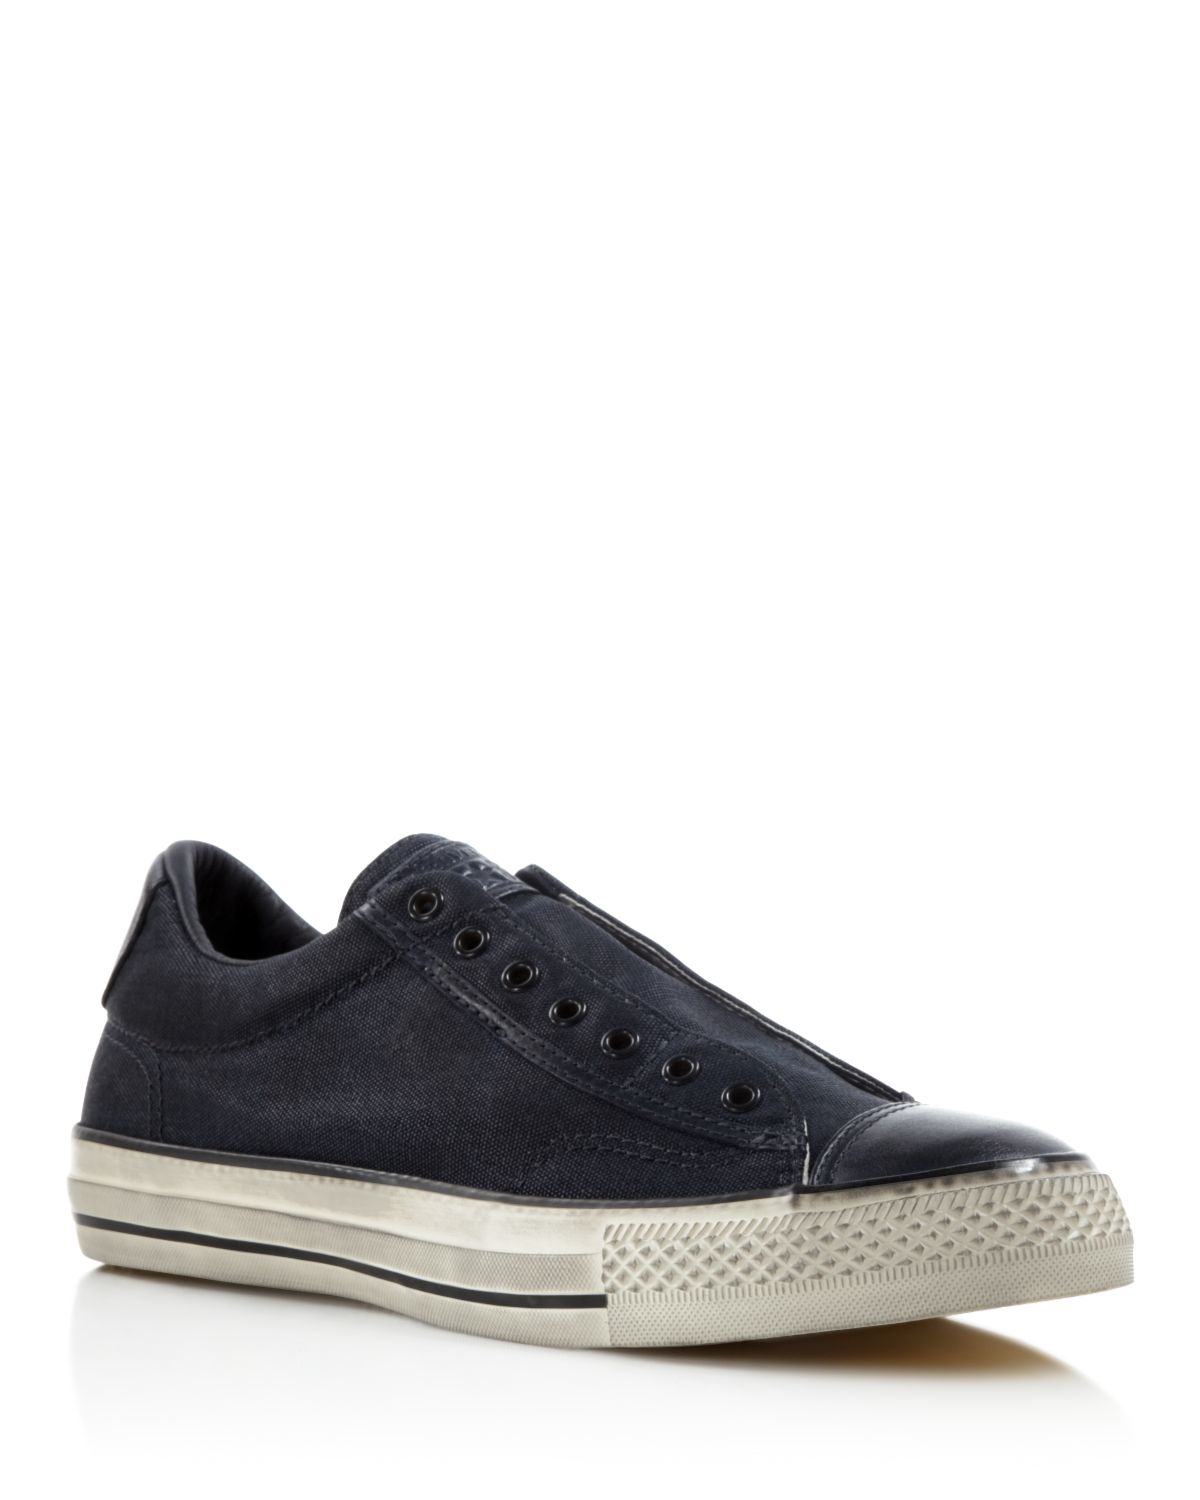 Converse All Star Vintage Slip On Sneakers In Gray For Men